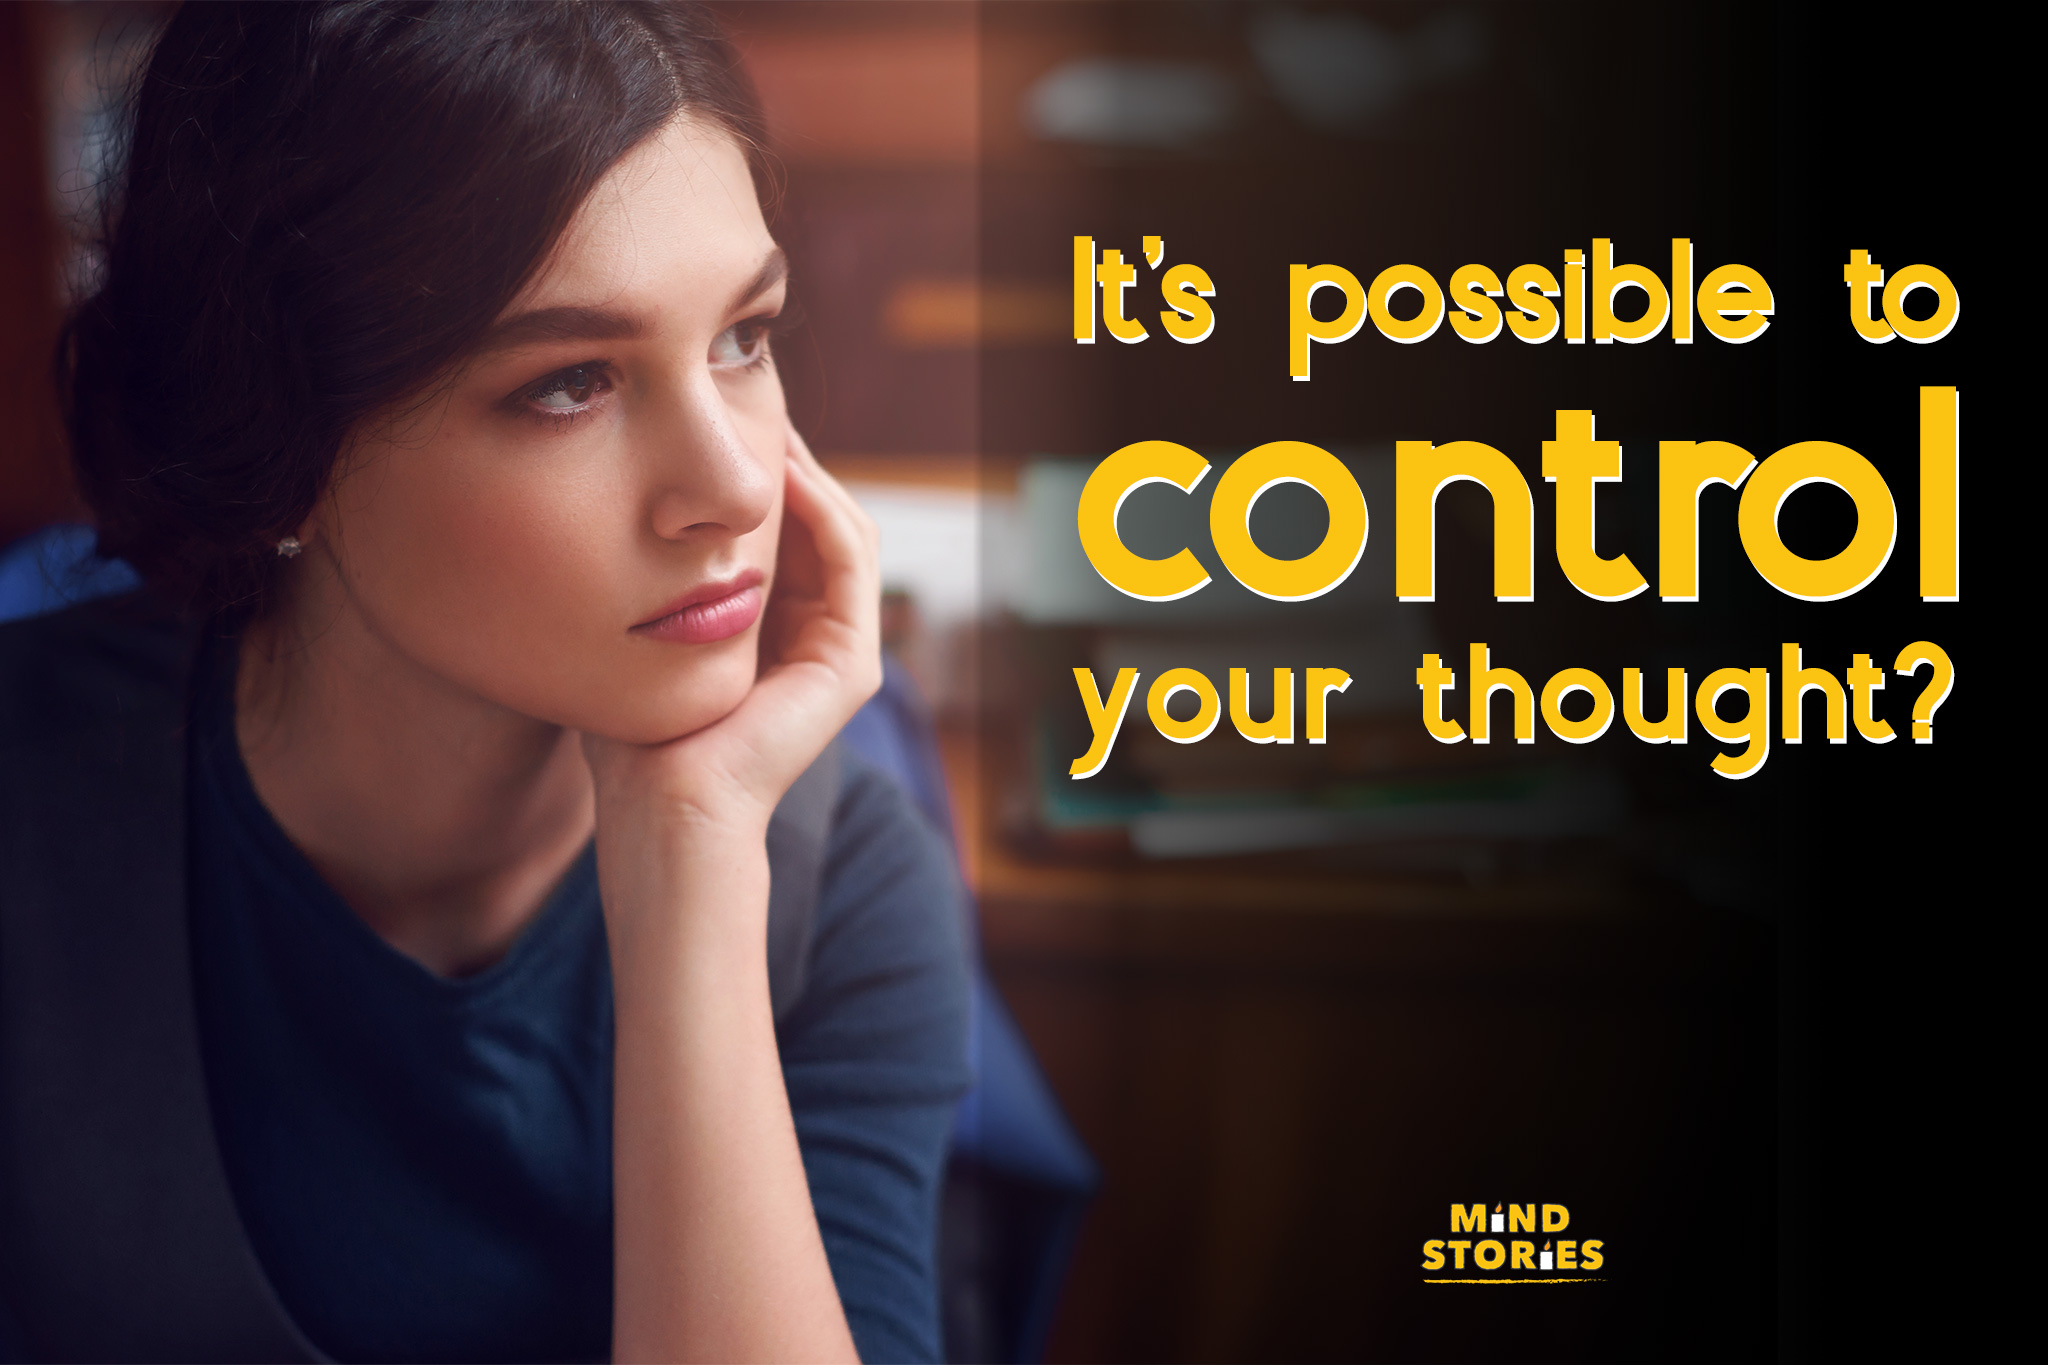 It's possible to control your thought?